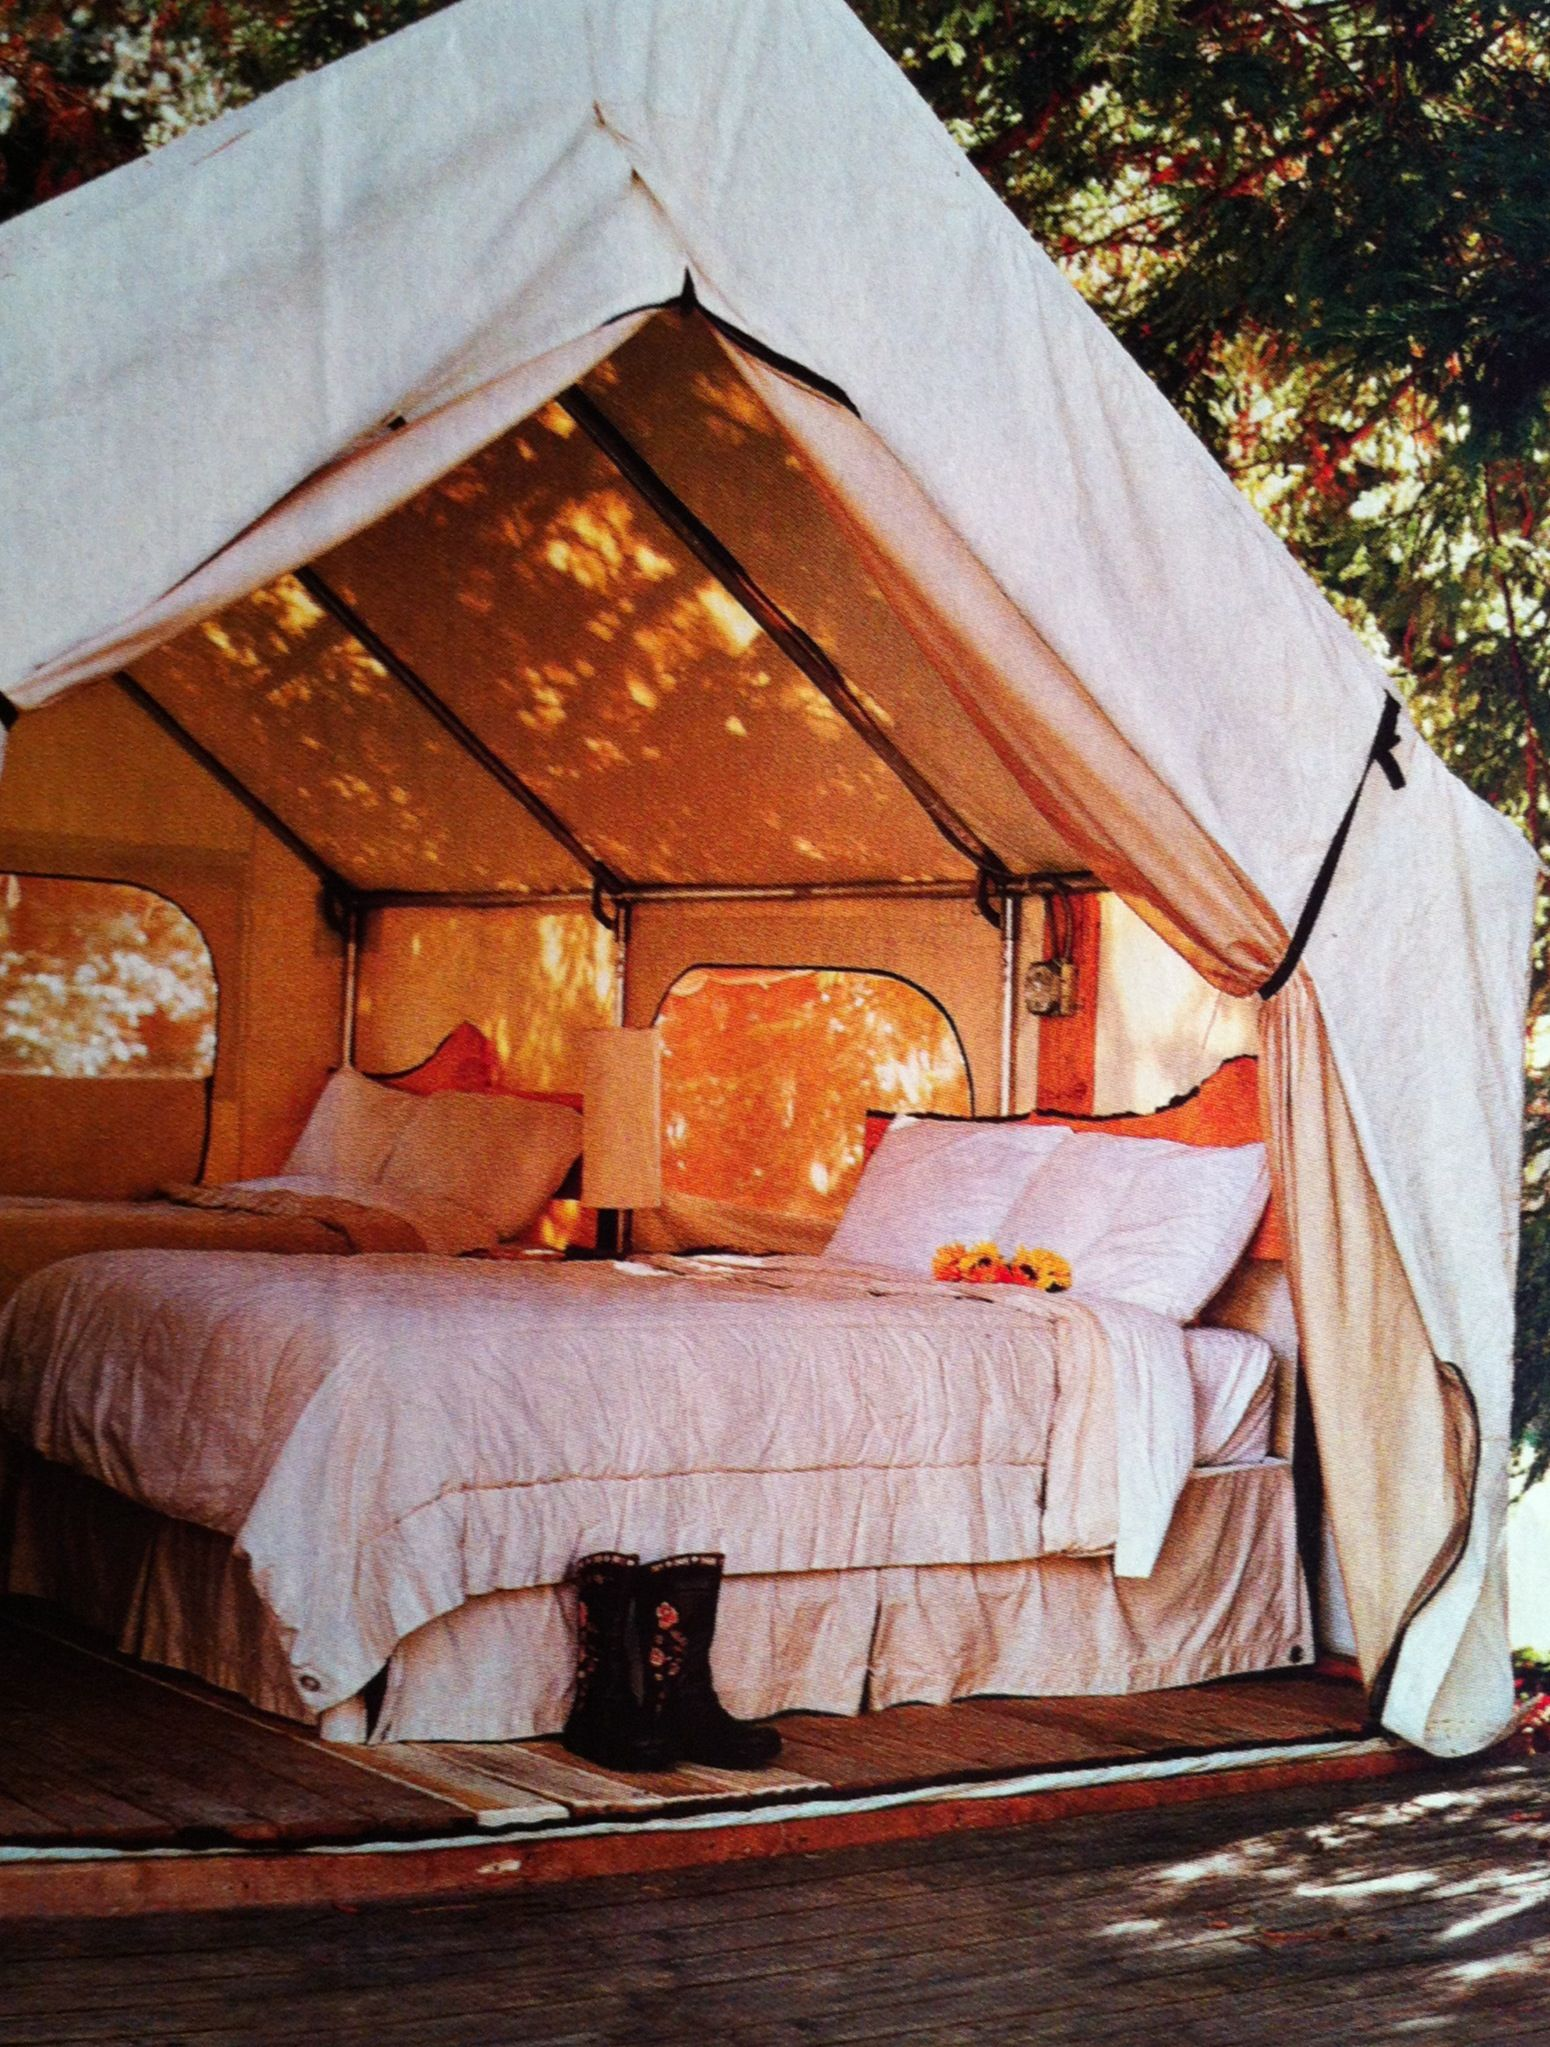 Wall Tent Ideas For Nice Camping